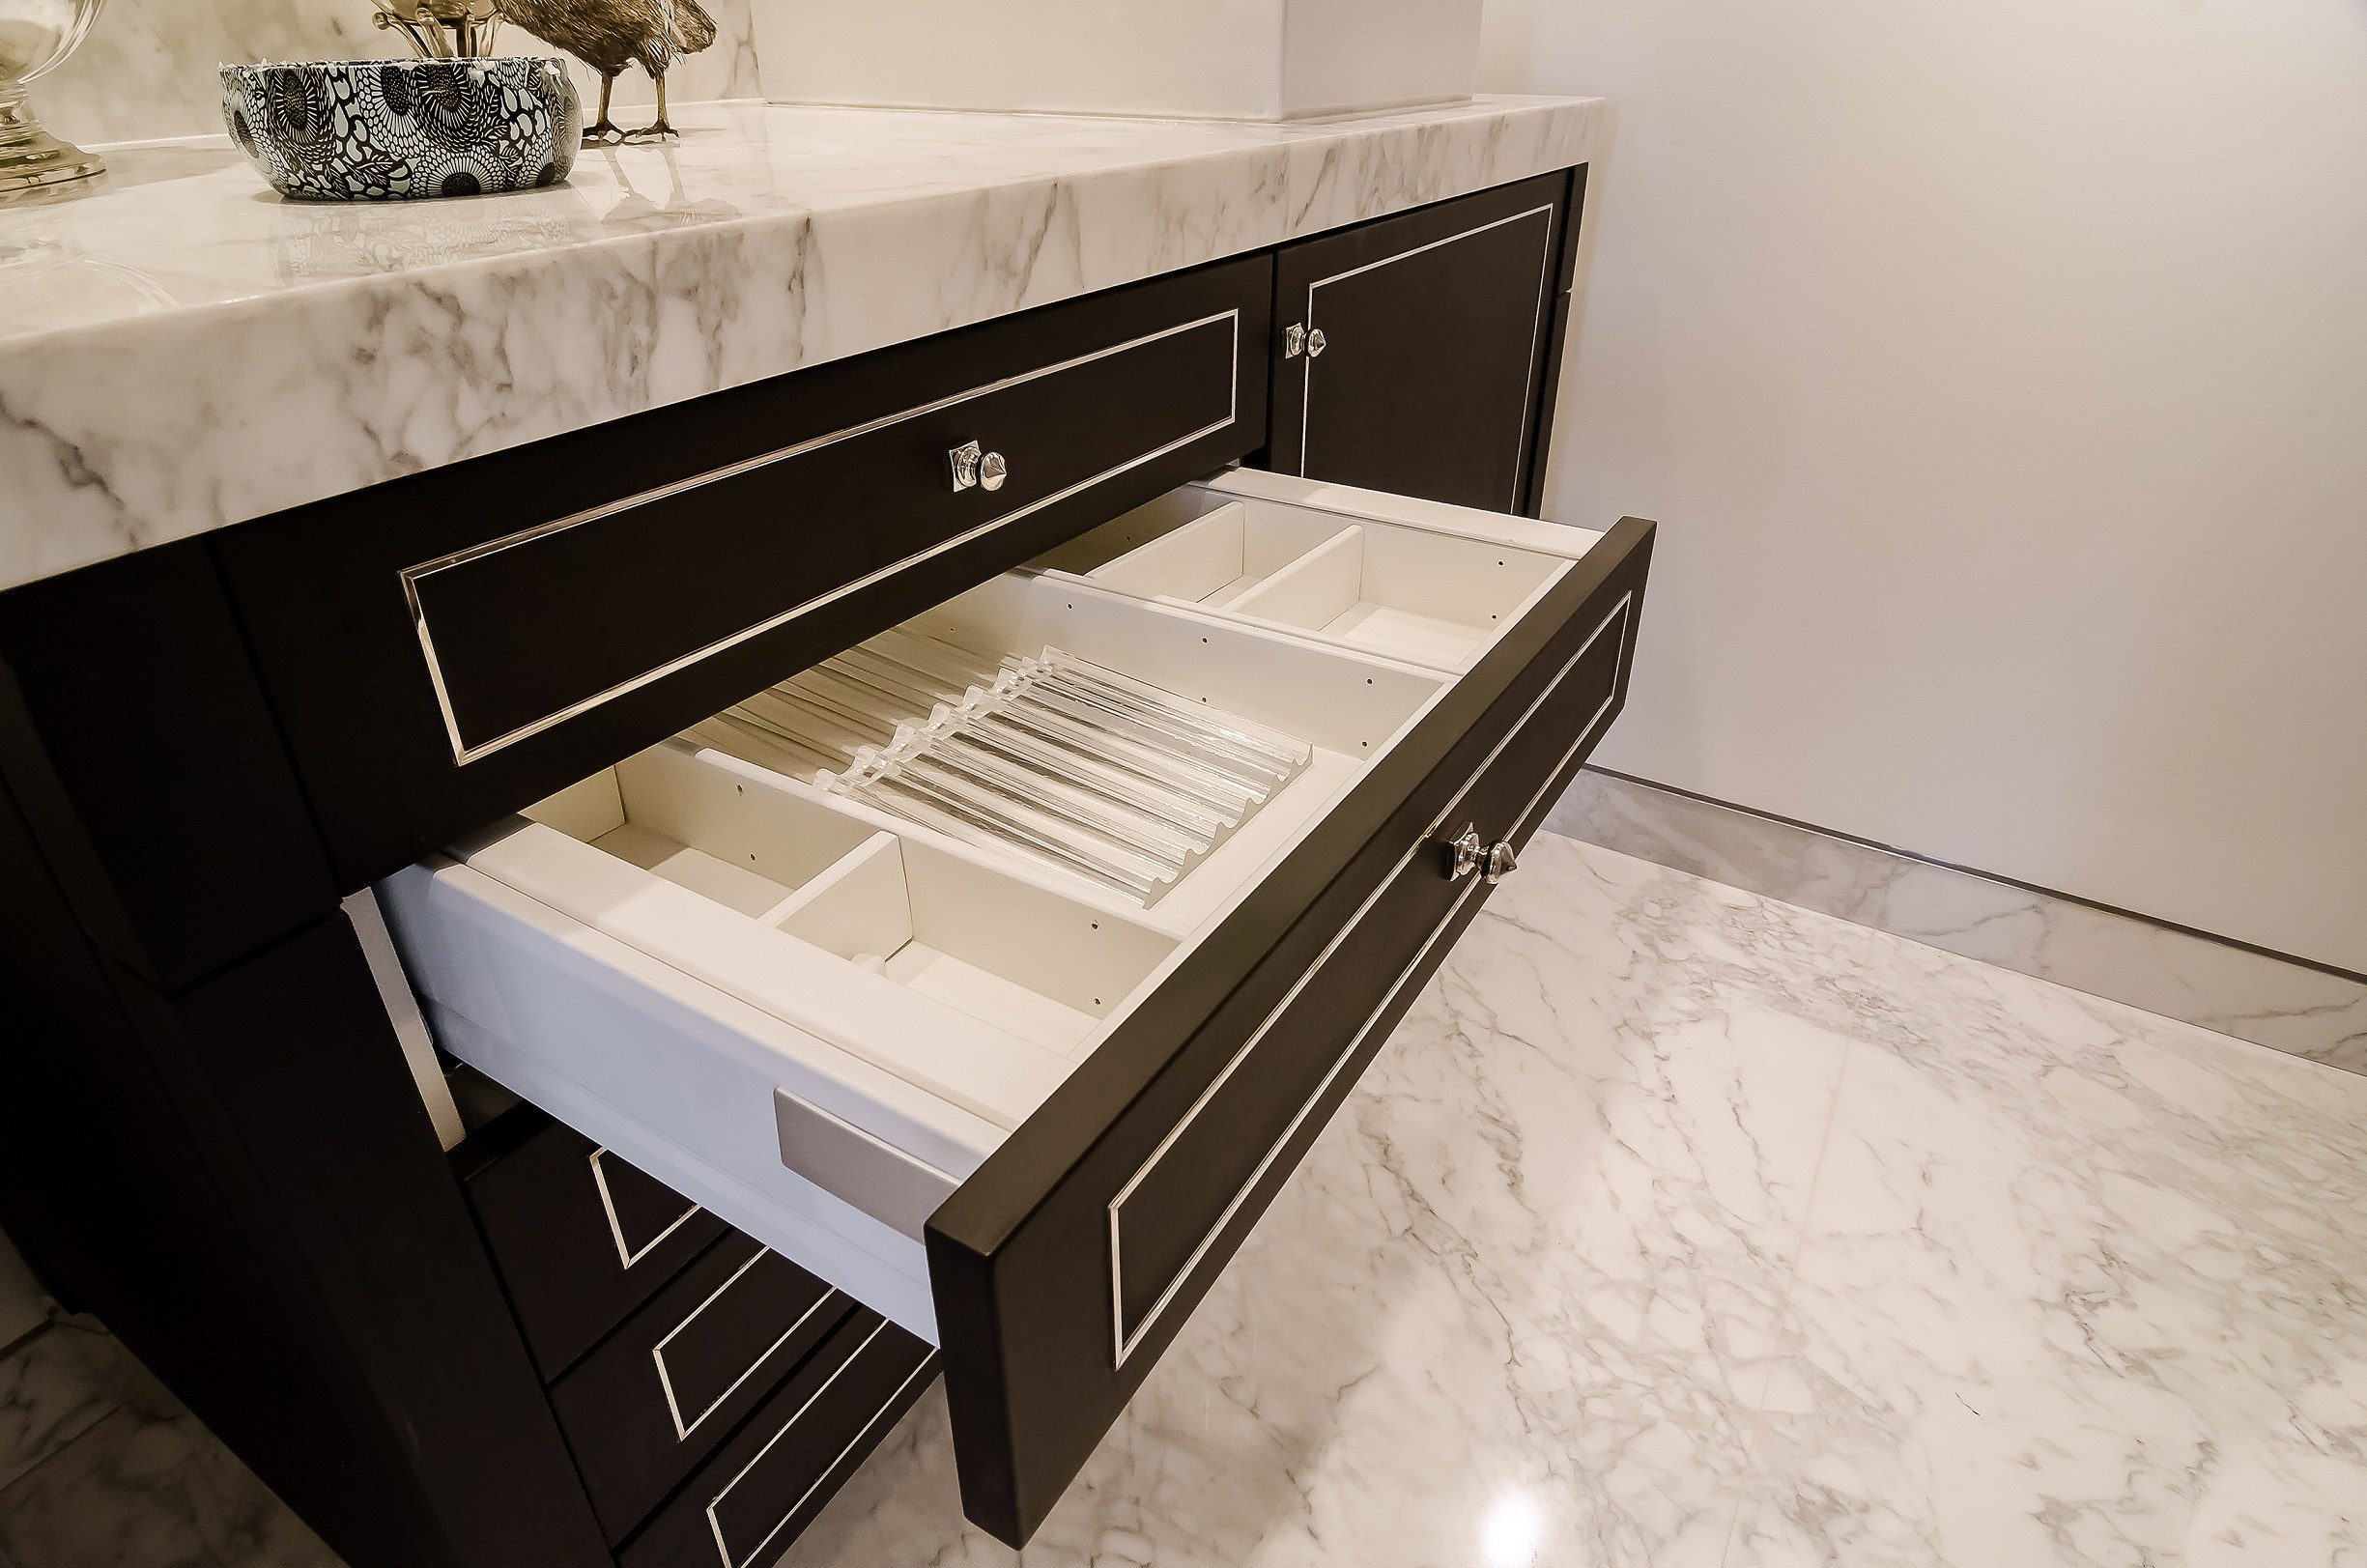 bathroom with dividers for better organization